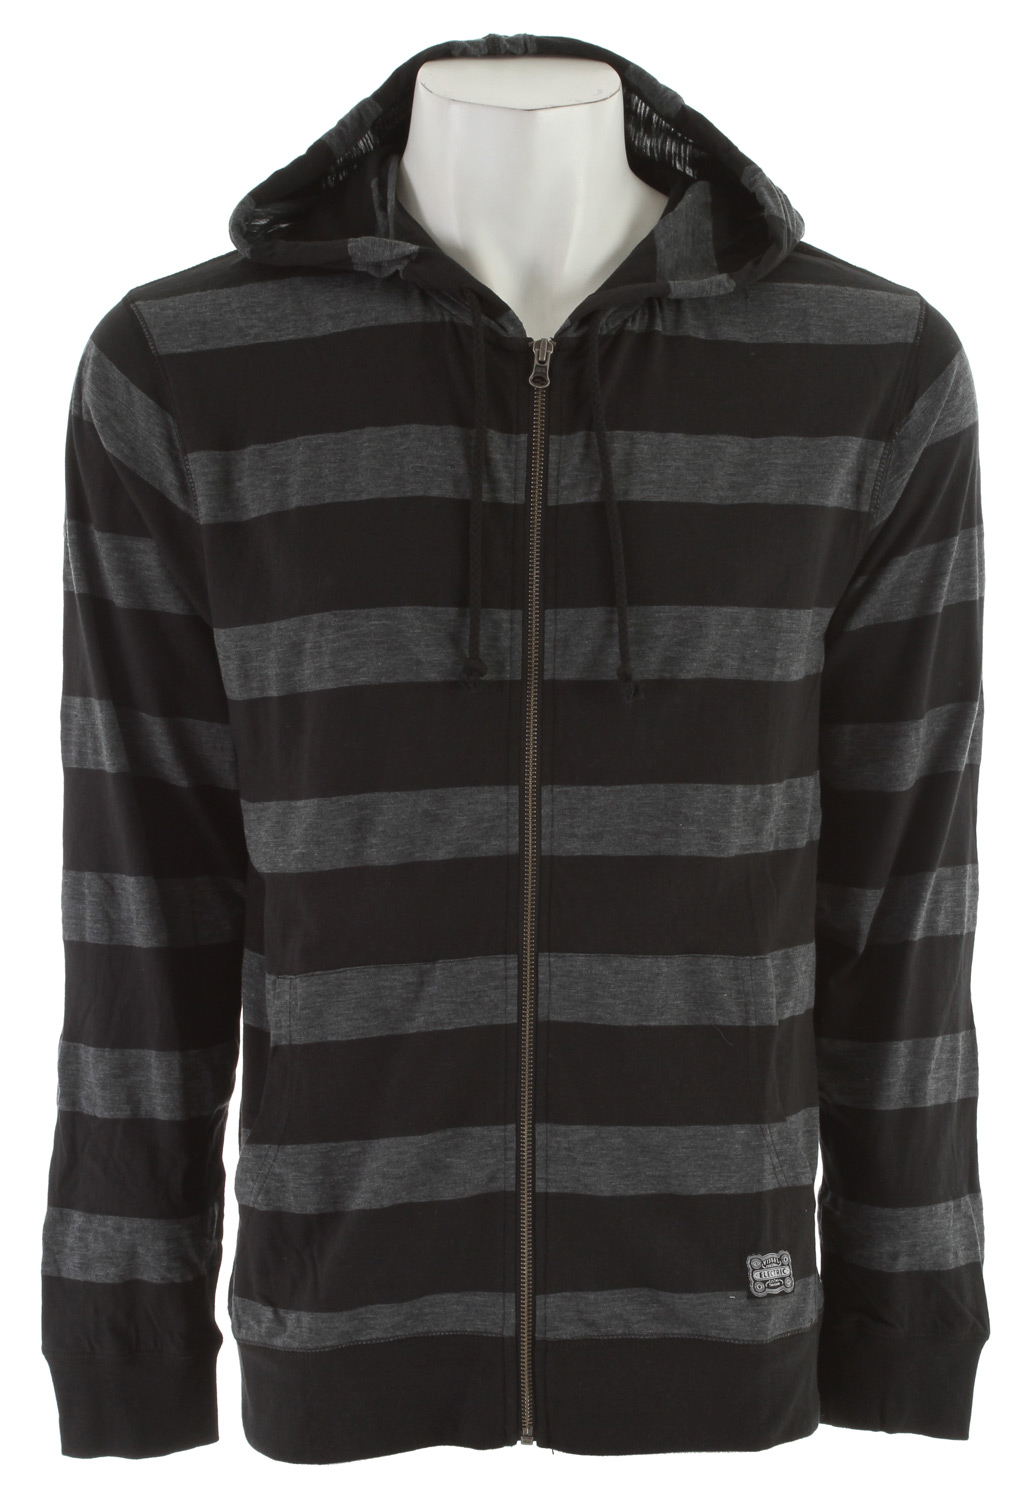 Key Features of the Electric Alley Zip Up Hoodie: Light Weight Hooded Fleece Slub Yarn 180 Gram, 74% Cotton / 26% Polyester - $44.95